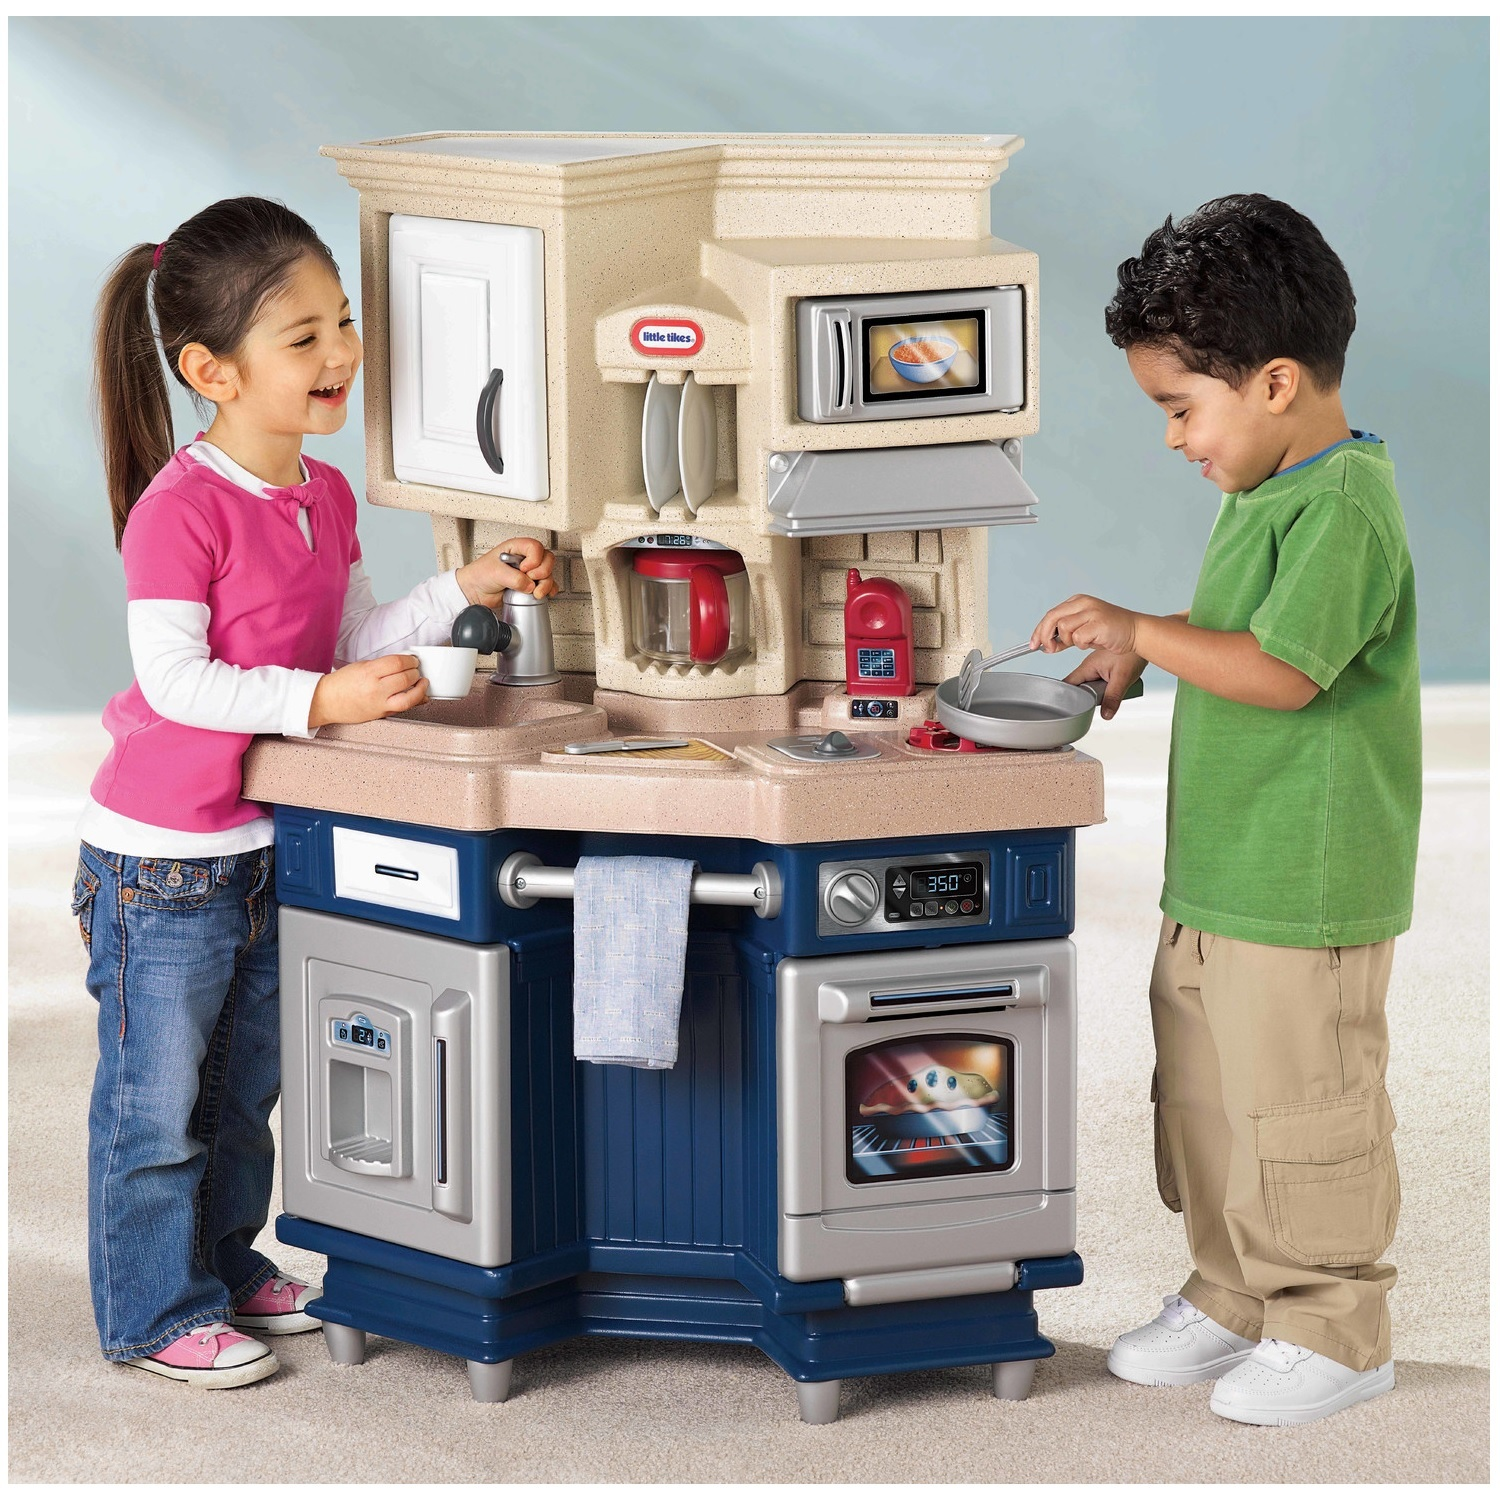 Play Cooking Toys : Kitchen play pretend kids toy super chef cooking playset